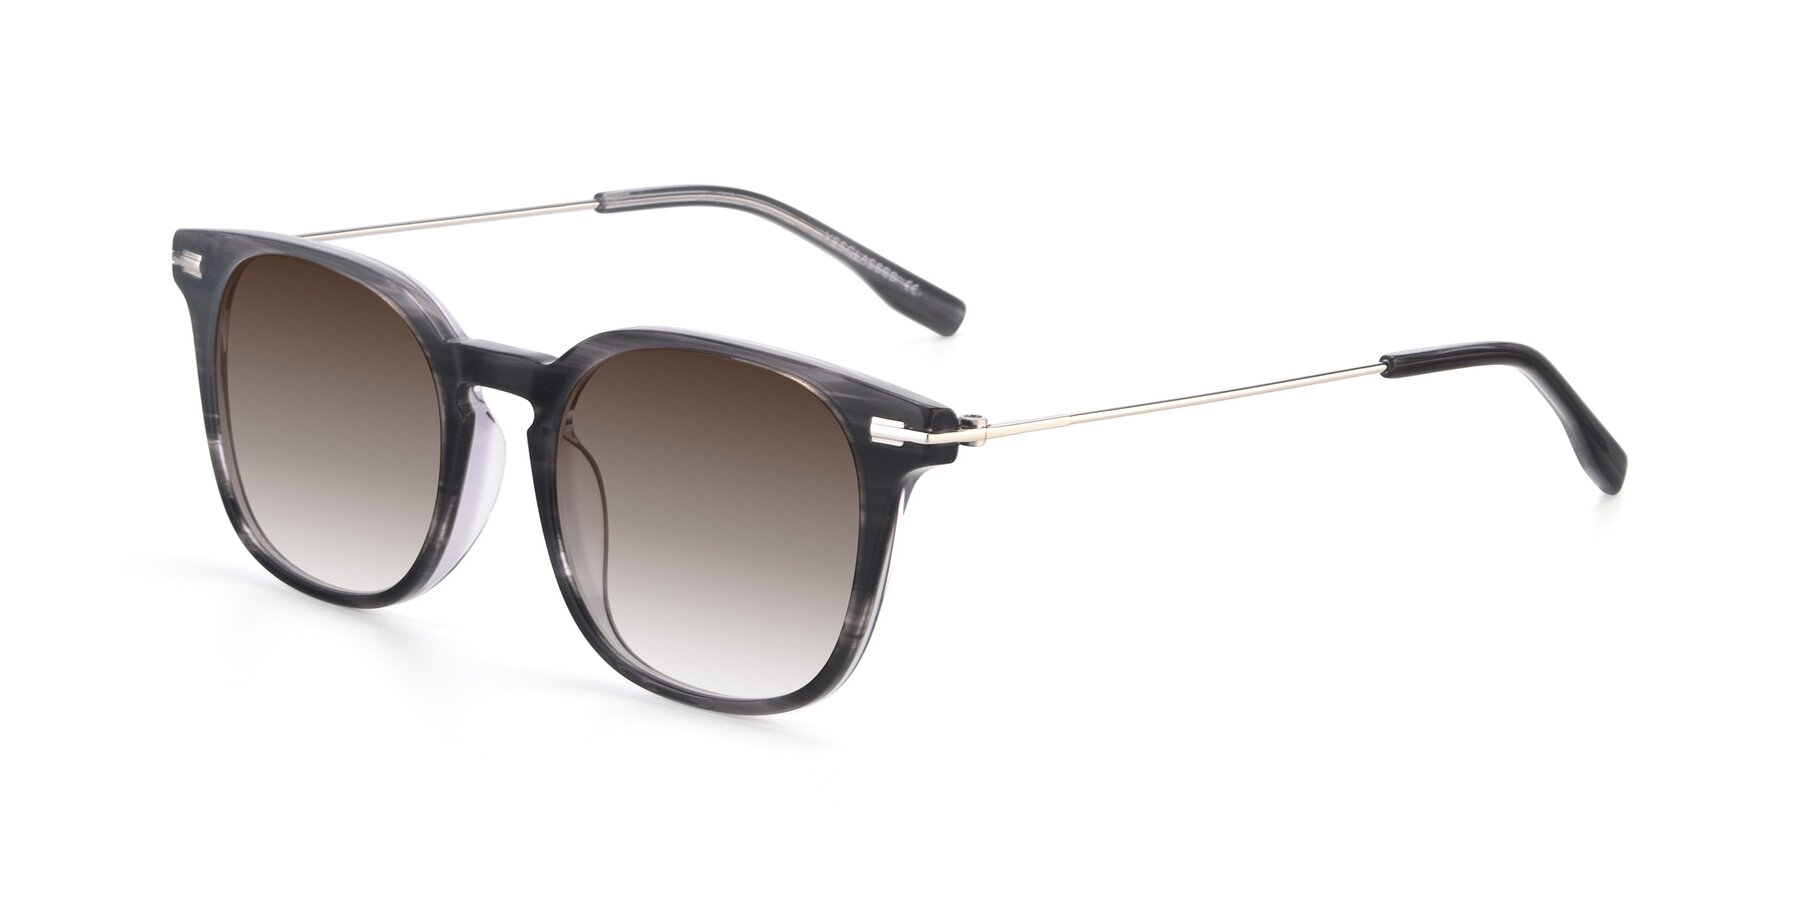 Angle of 17711 in Grey with Brown Gradient Lenses